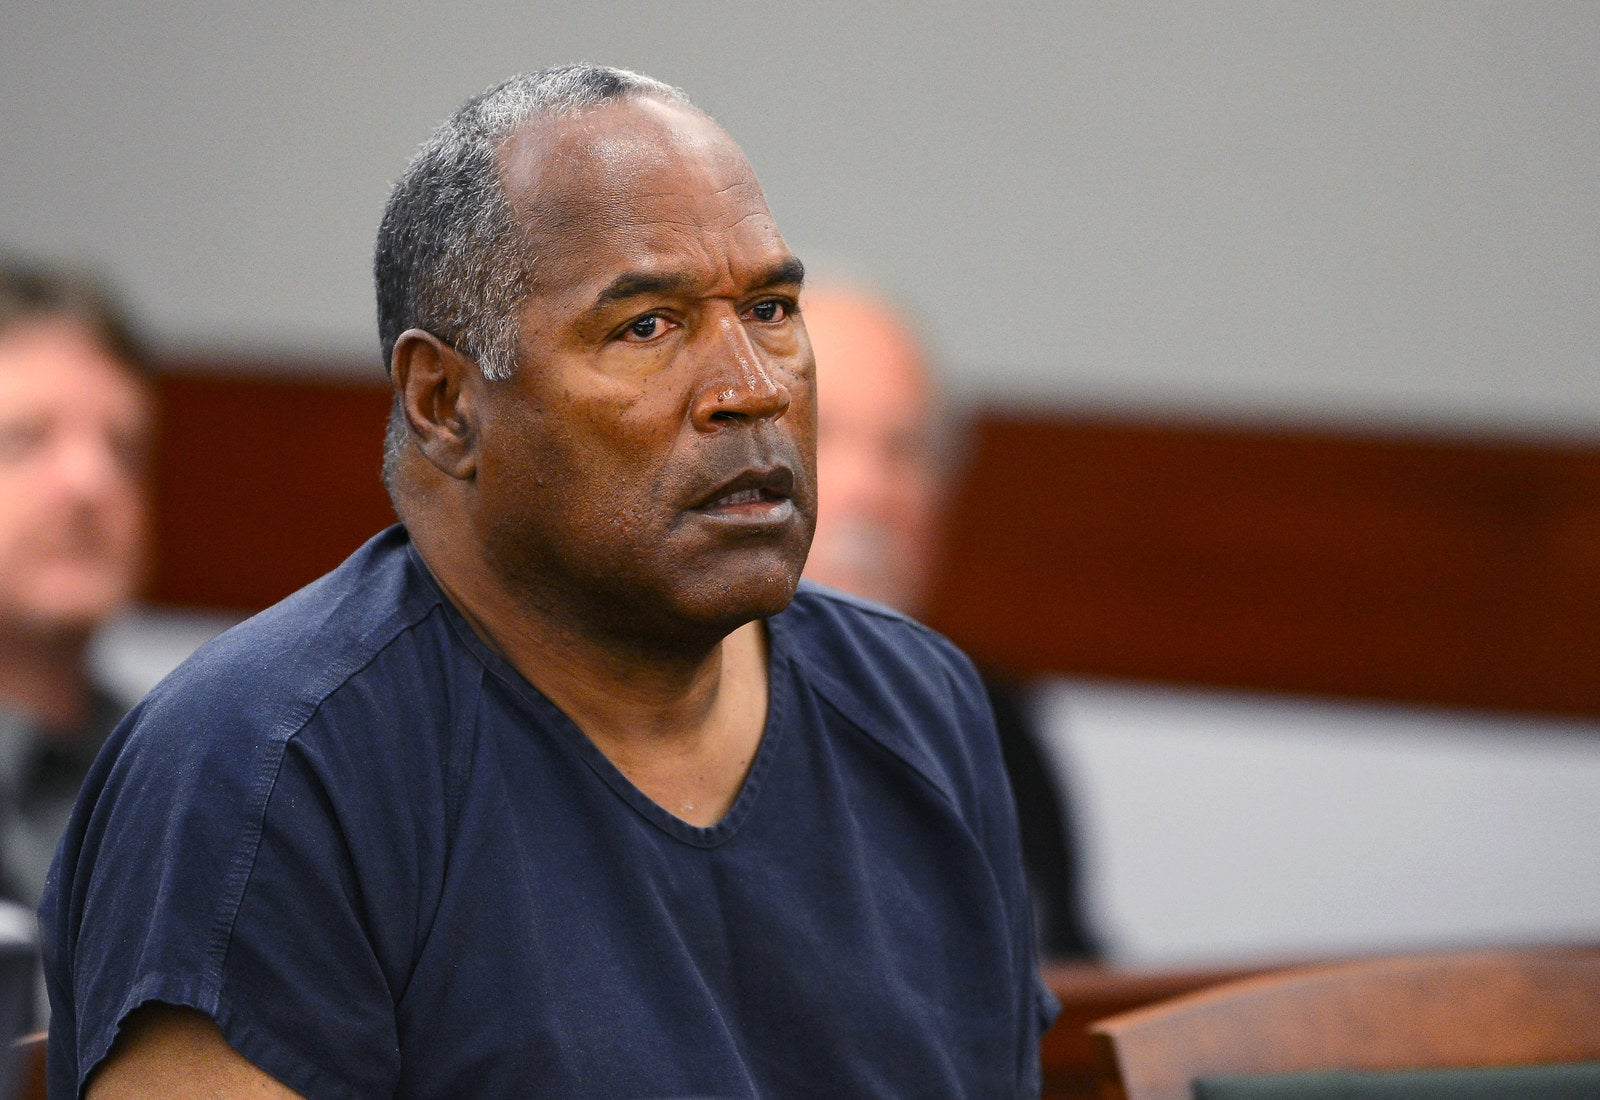 O.J. Simpson Could Be Granted Parole Today After Serving Nine Years In Prison For Robbery